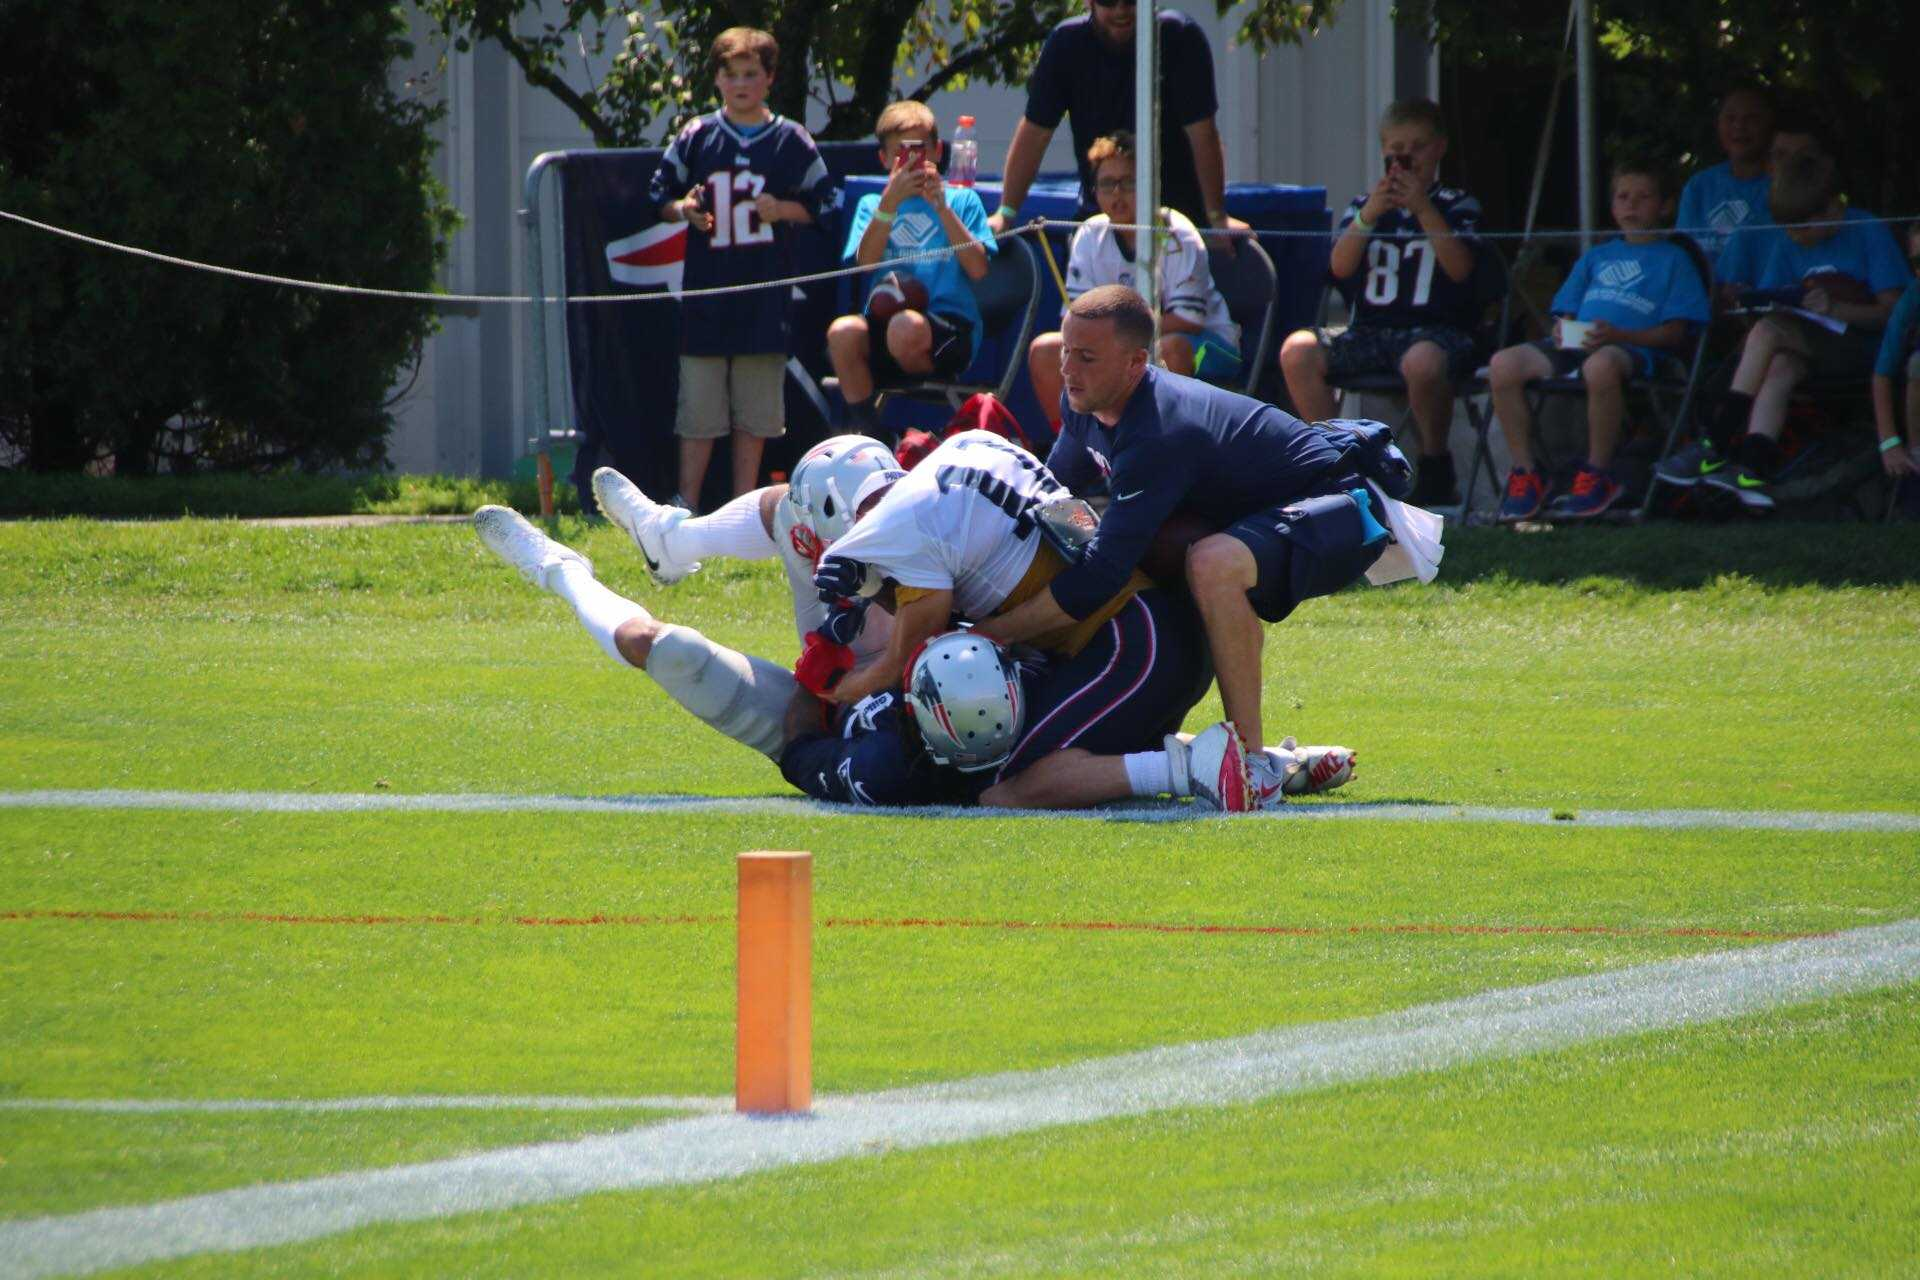 Julian Edelman, Stephon Gilmore ejected from Patriots camp for fighting